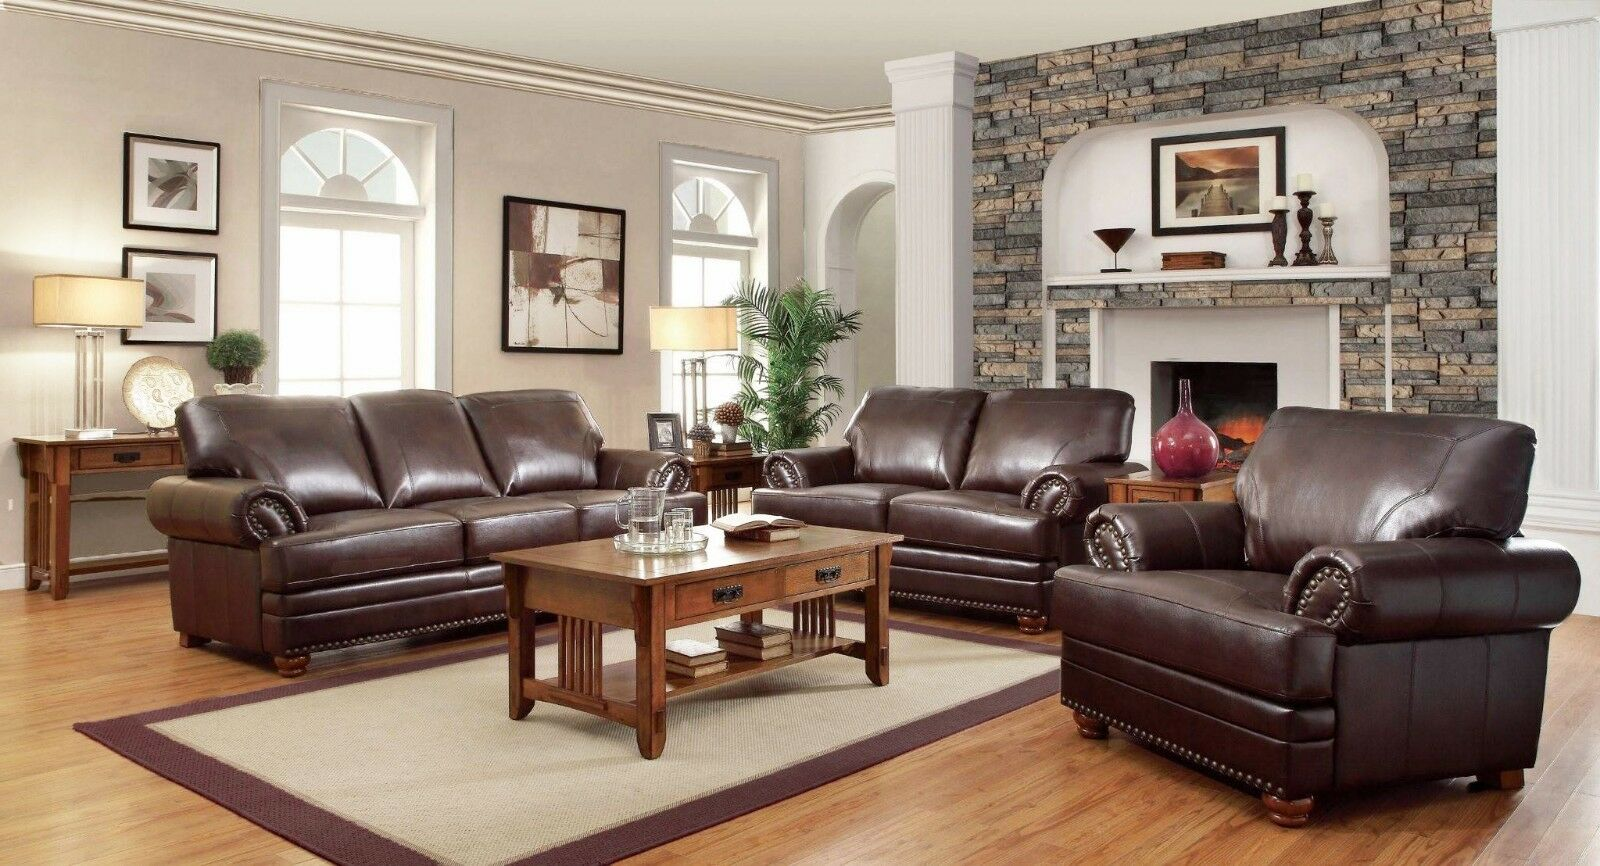 - Traditional Brown Bonded Leather Sofa Loveseat & Chair 3 Piece